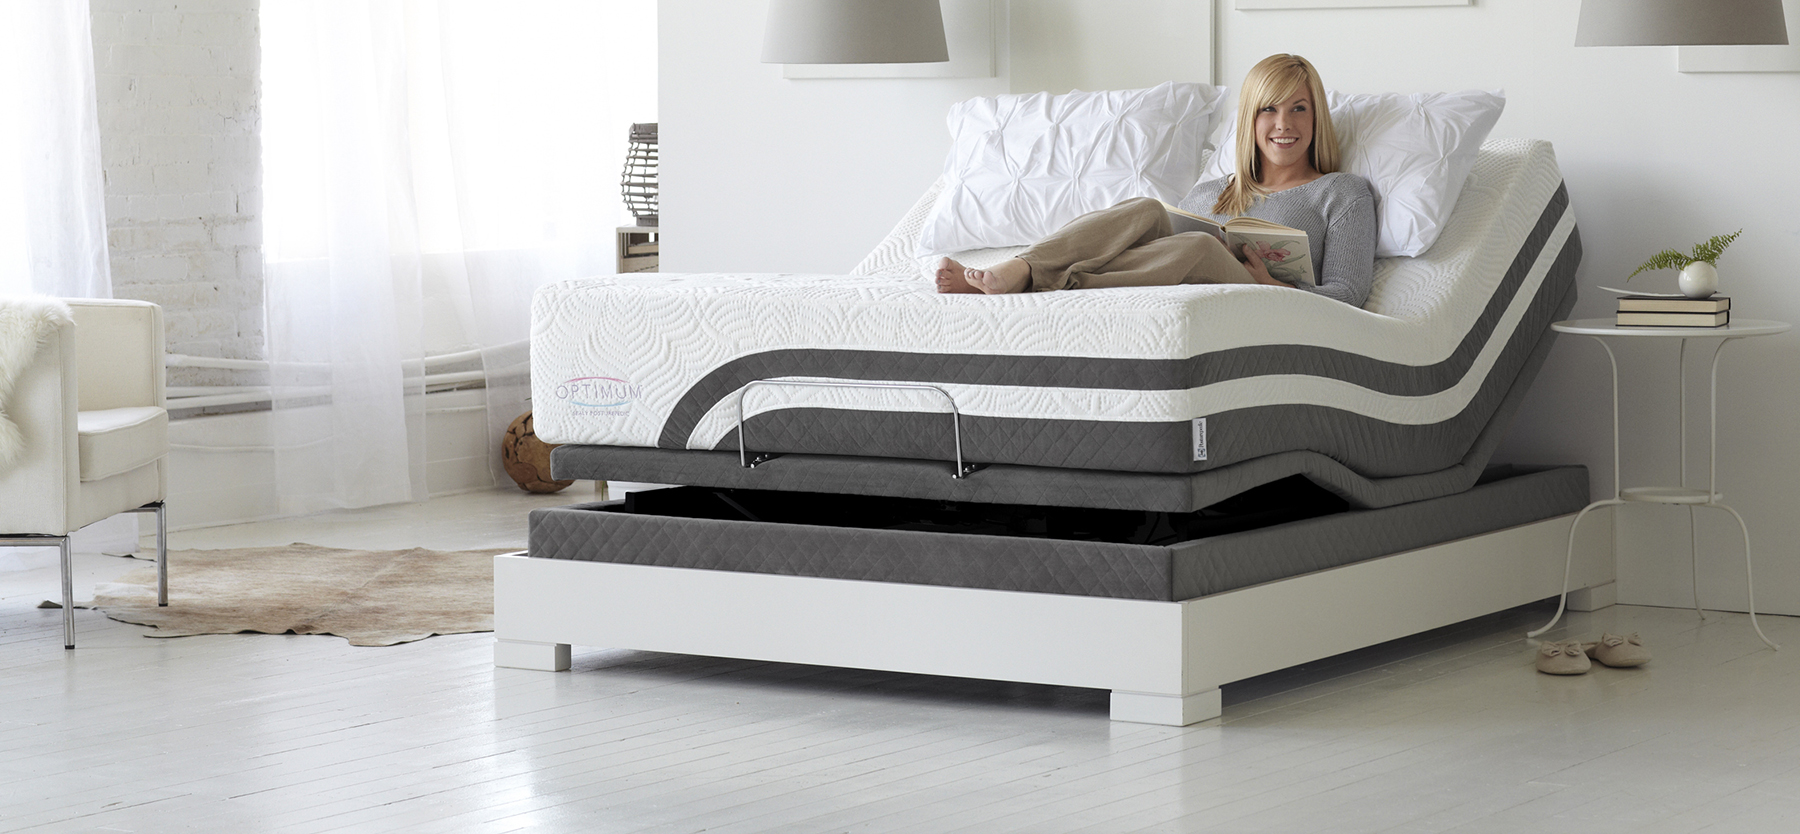 Adjustable Beds The Top 3 Health Problems They Improve